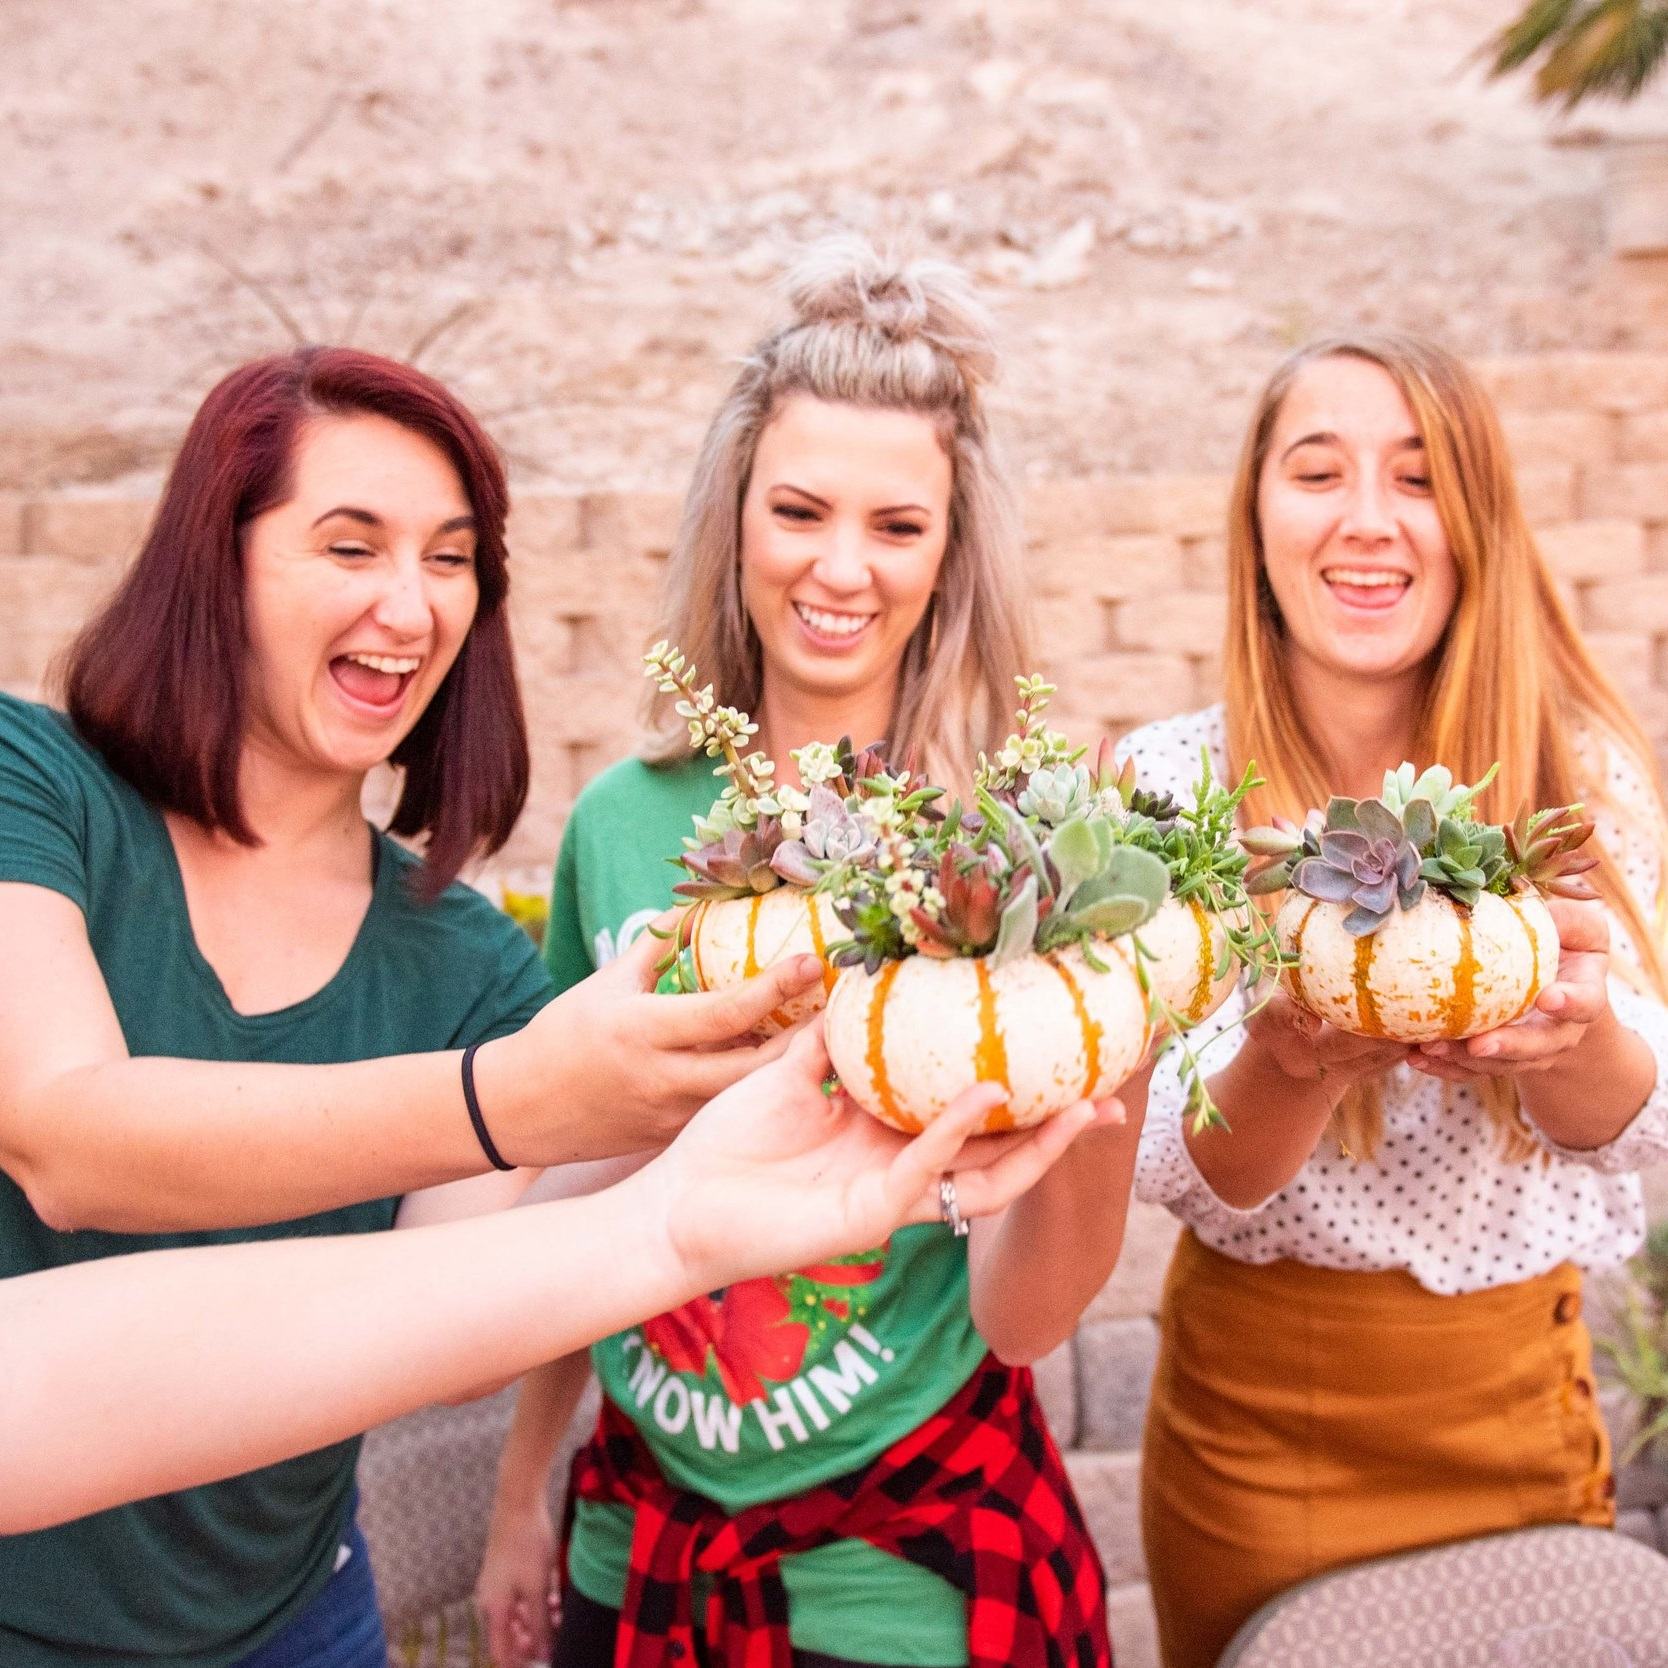 Pumpkin Plant Party! Carving Mini Pumpkins and planting succulents in them for a cute DIY holiday centerpiece.  Mobile Plant Parties By: The Potted Poppy, San Diego.